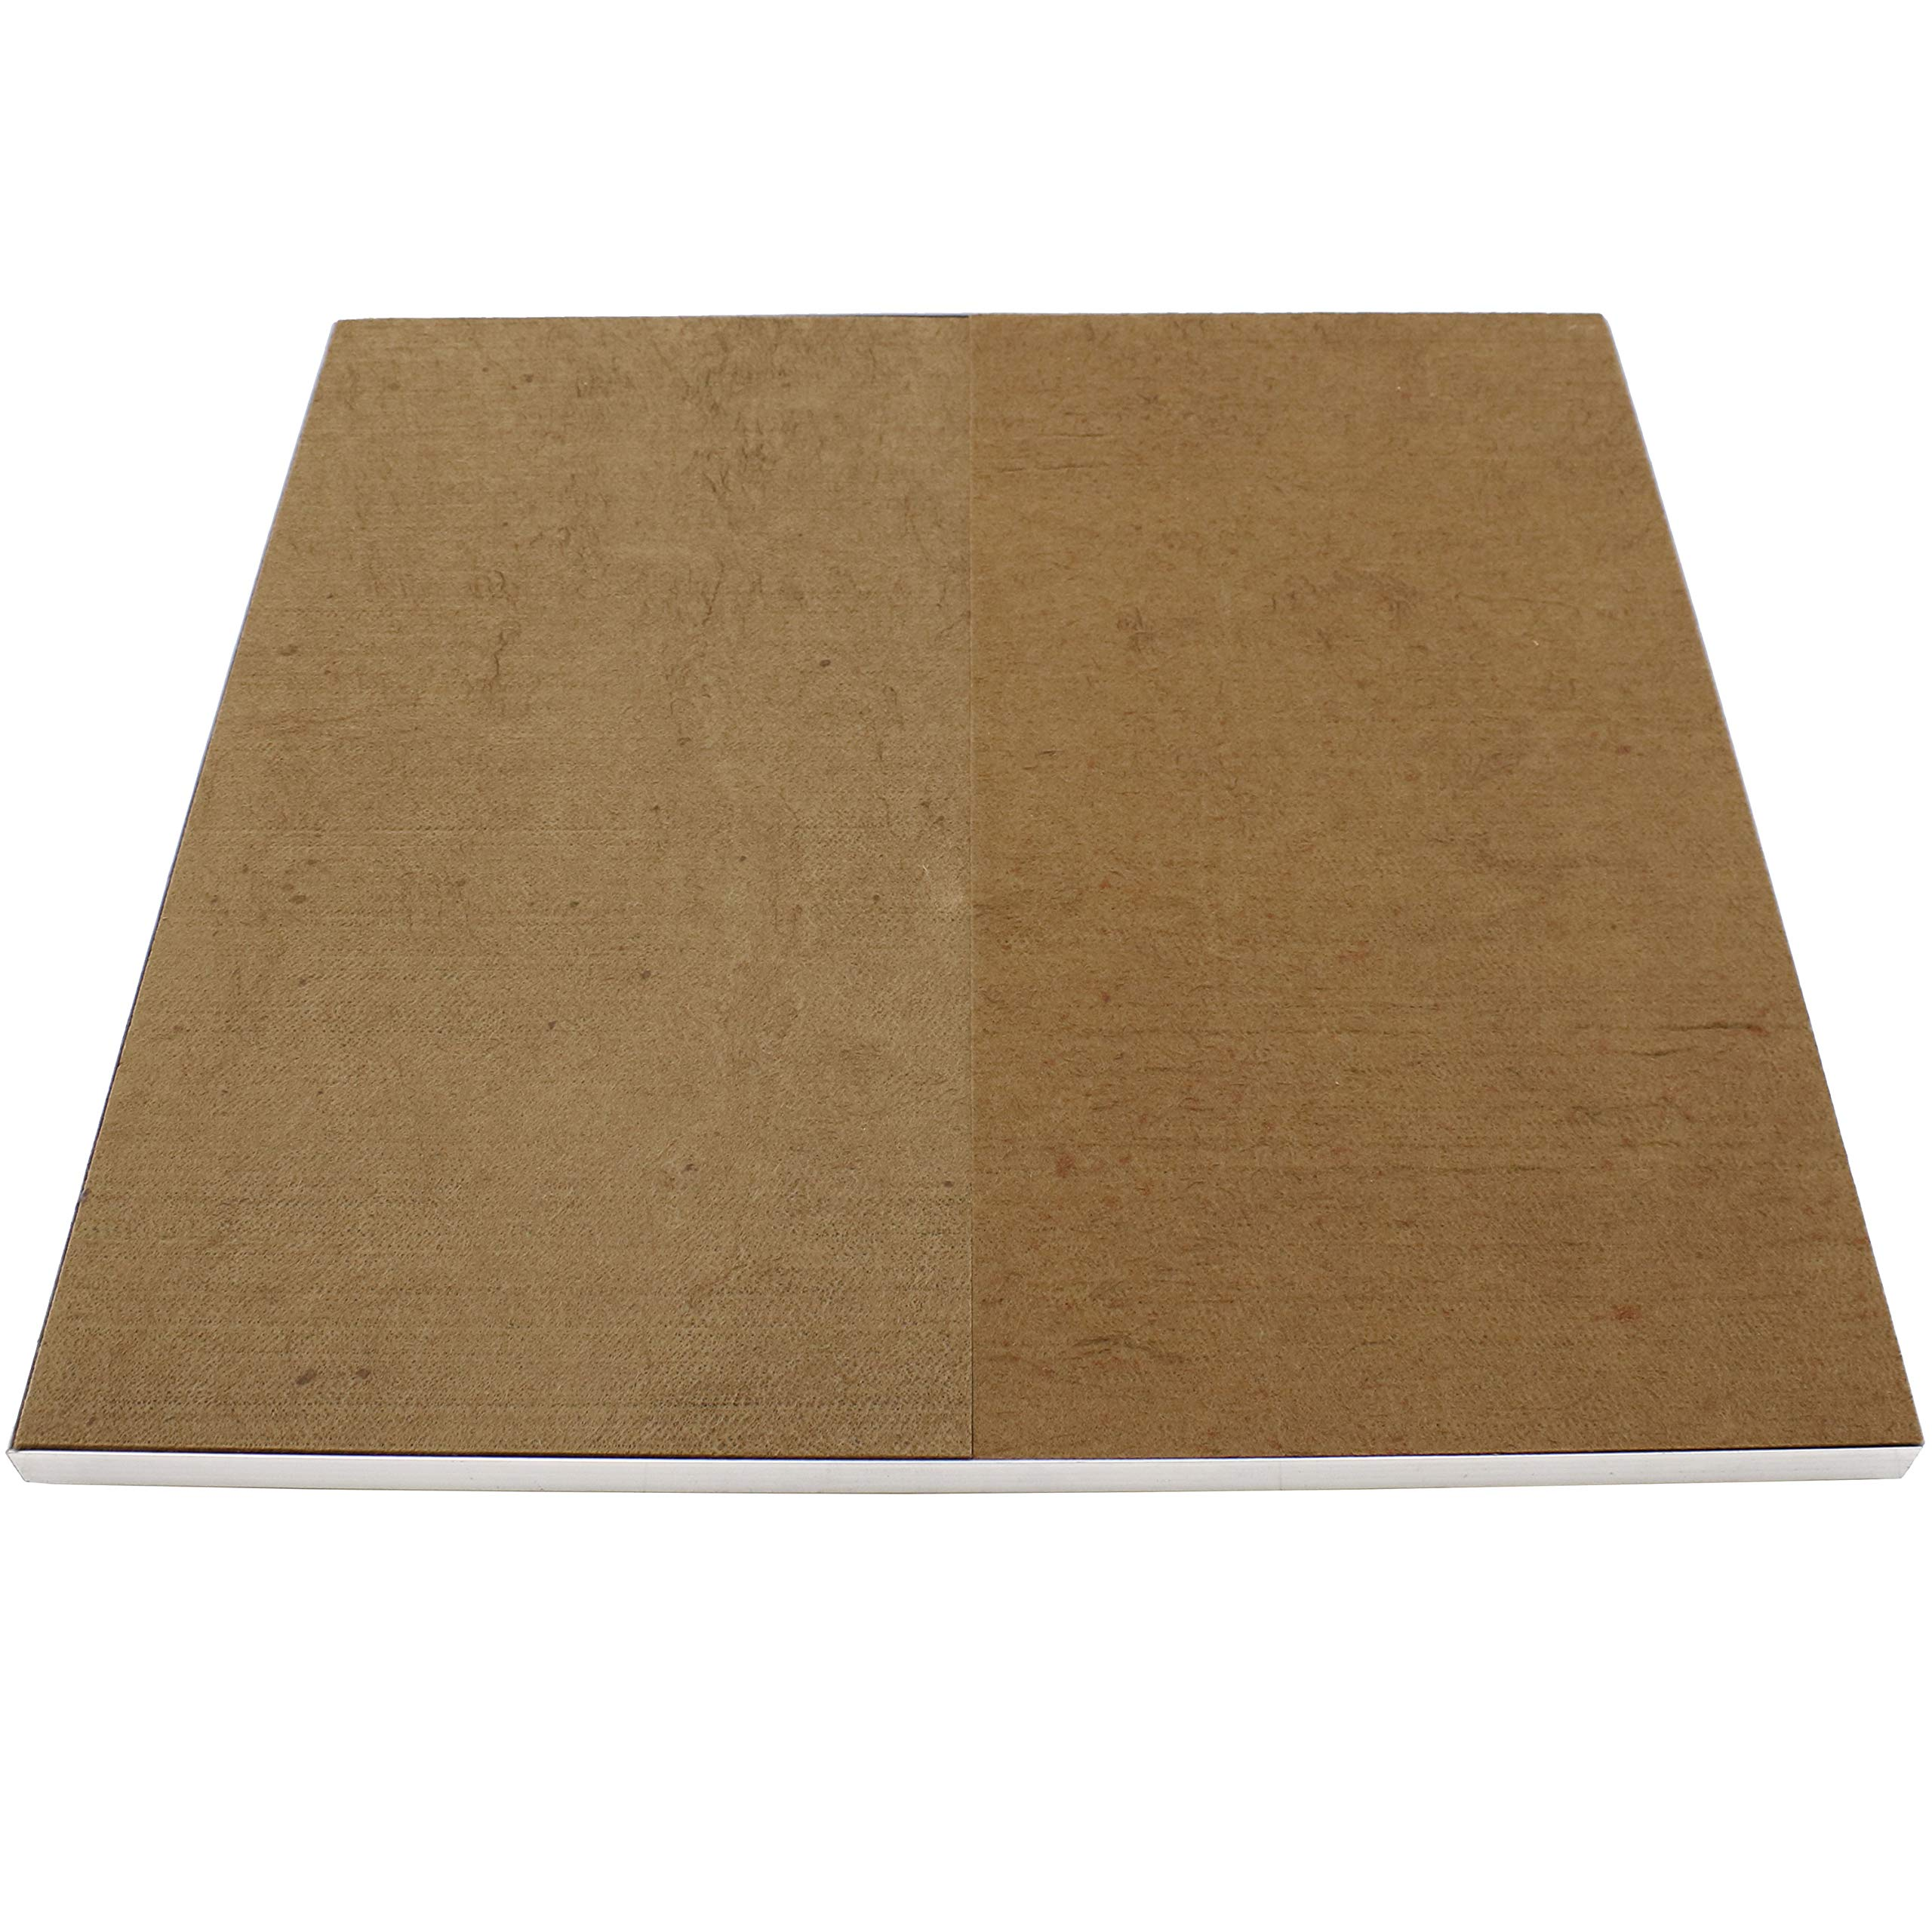 """Deckprotect 30"""" x 30"""" Fire Pit Mat & Rack product image"""